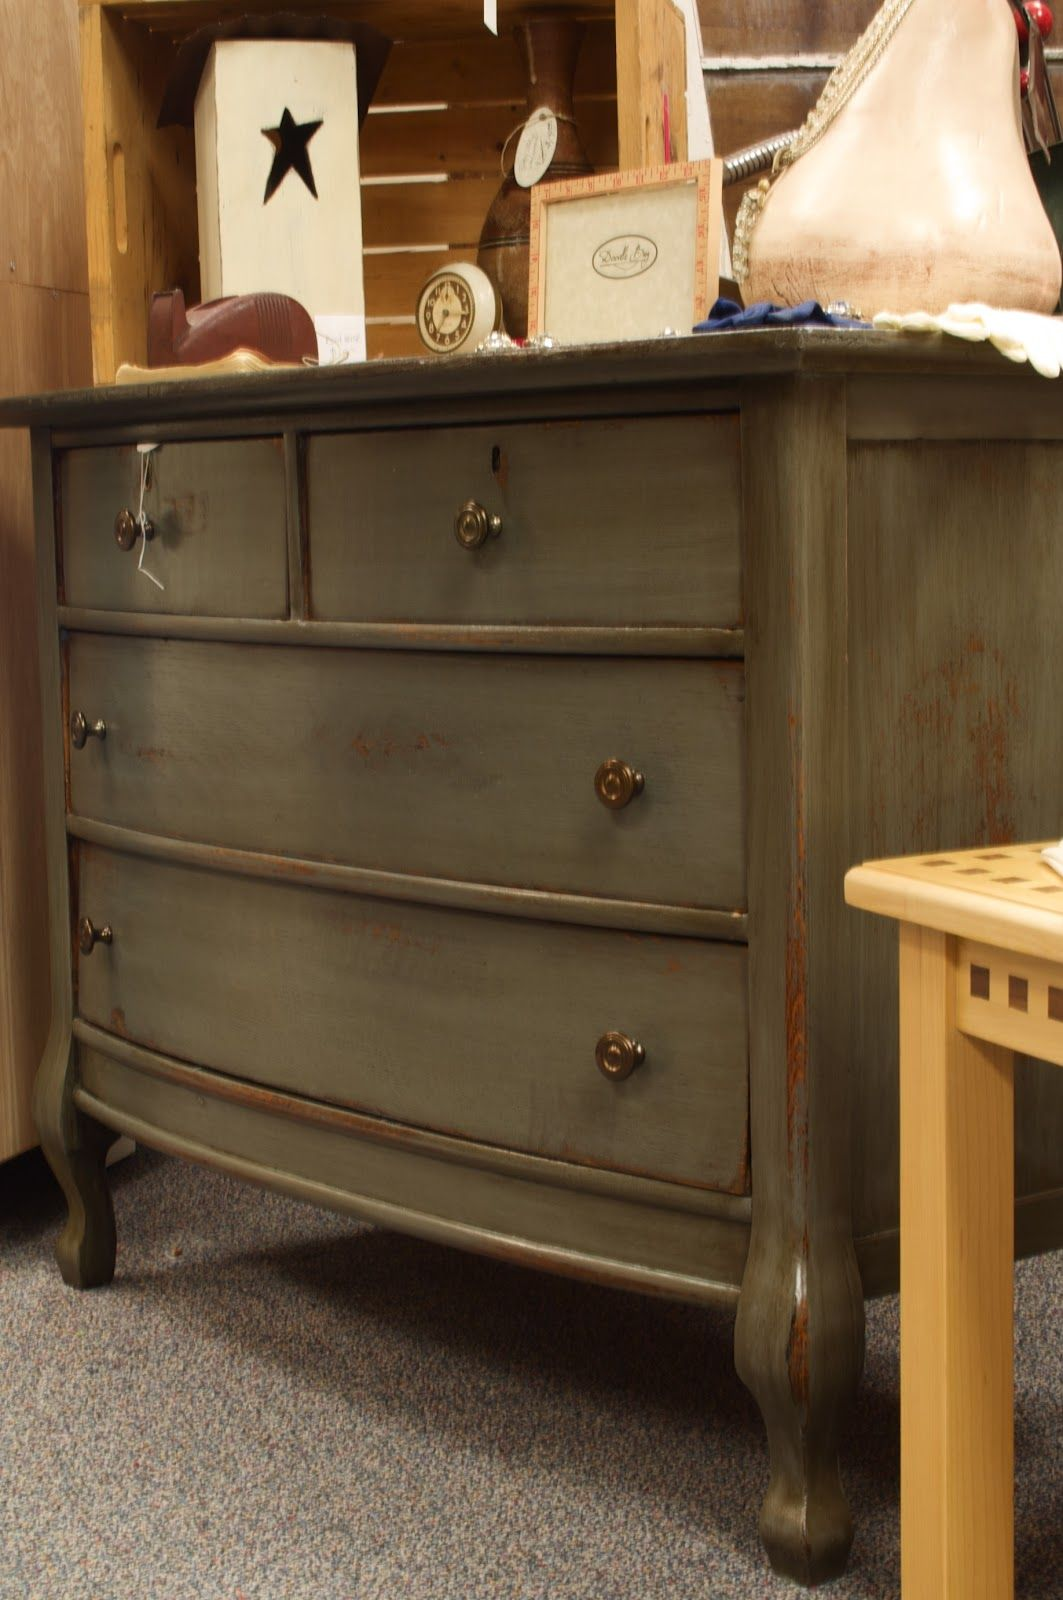 diy furniture refinishing projects. Doodle Bug: Distressed Antique Dresser--Paint \u0026 Stain- Good Luck Dea For. Furniture RefinishingFurniture MakeoverFurniture ProjectsDiy Diy Refinishing Projects